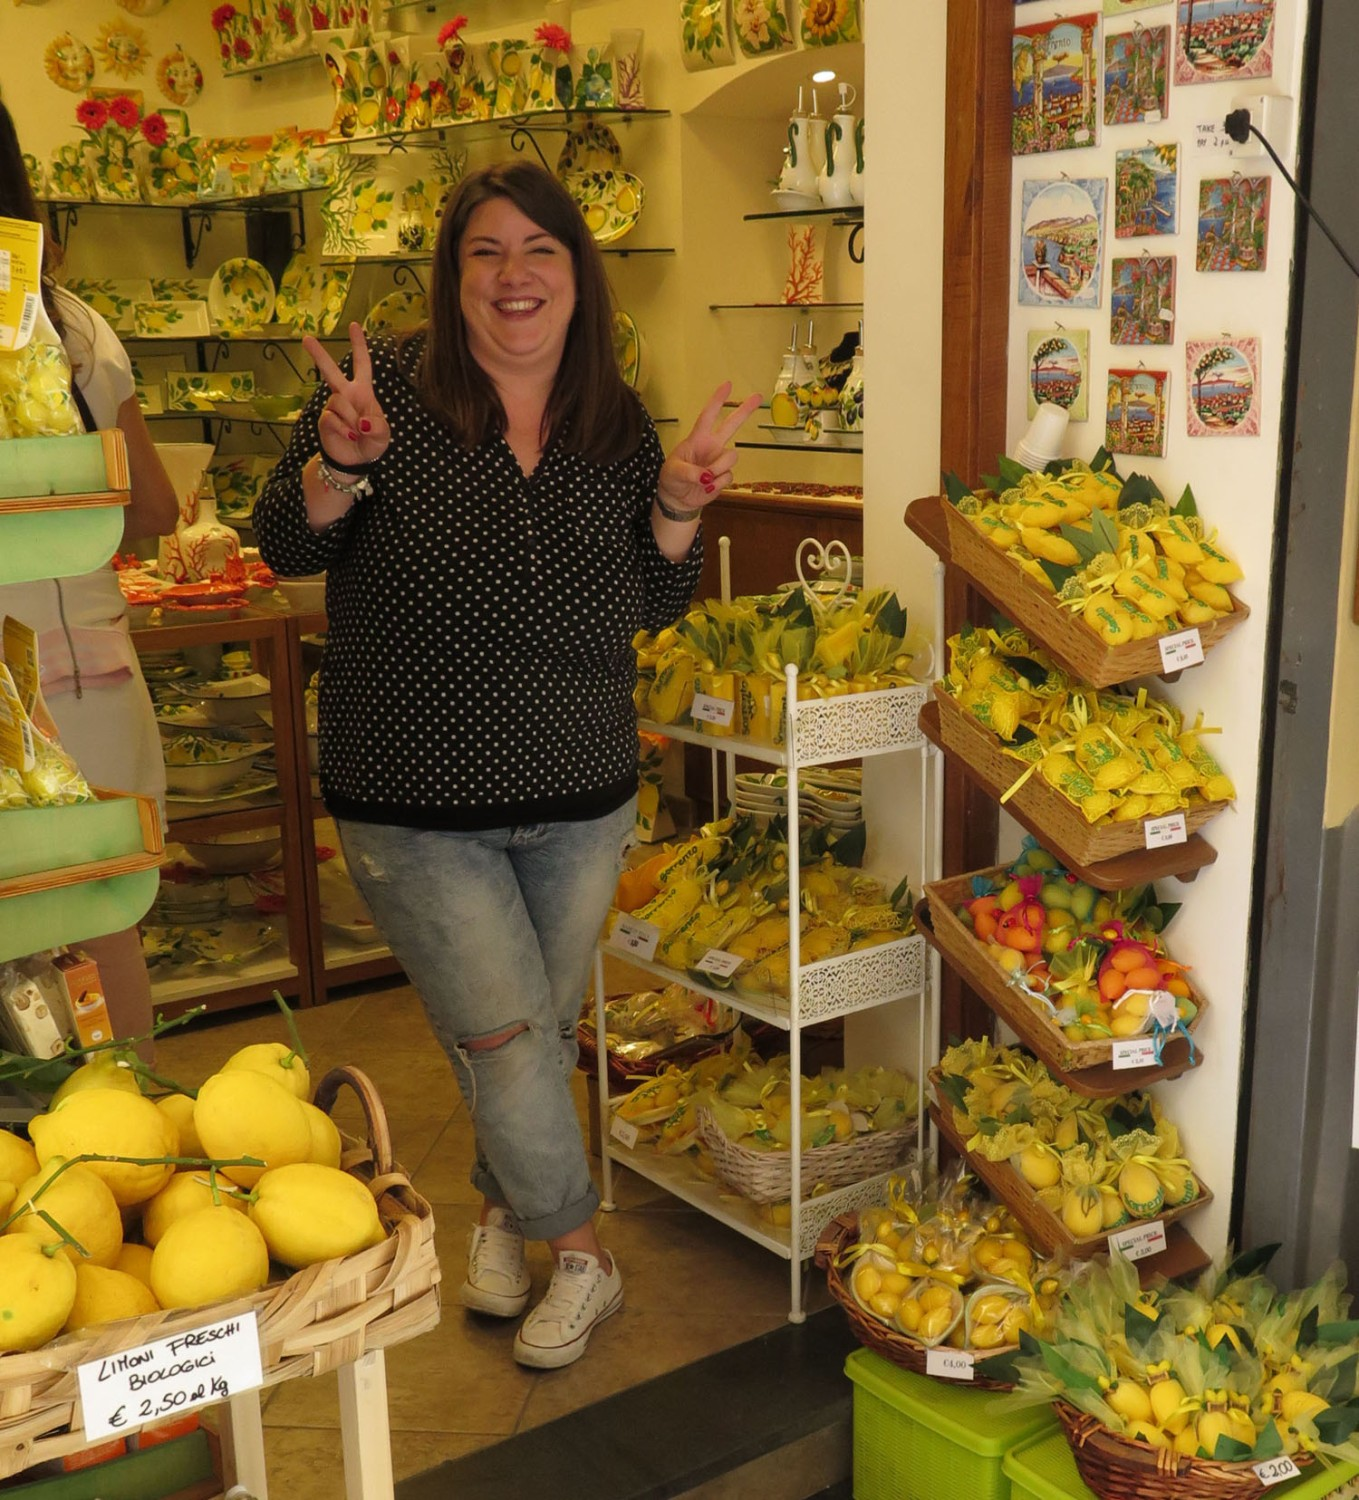 Italy-Sorrento-Lemon-Shop